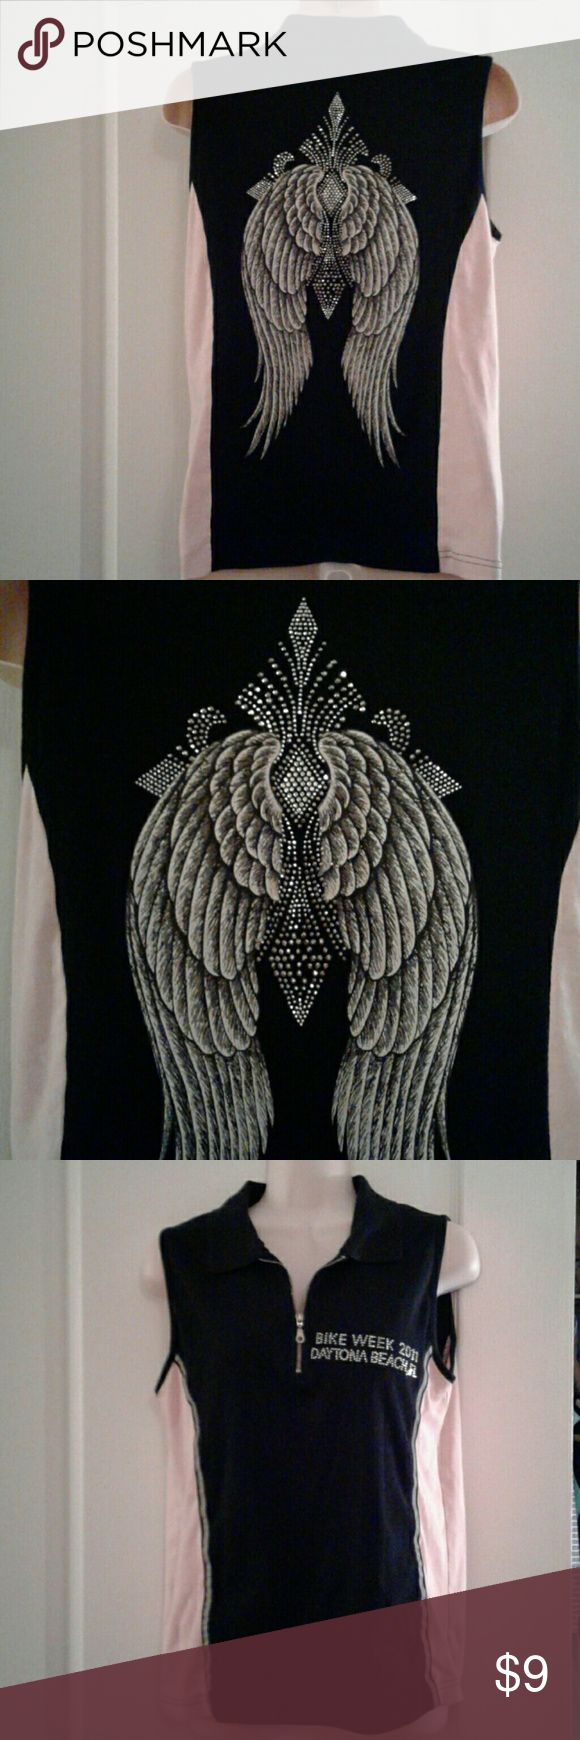 Biker wear embellished angel wings top In very good condition sleeveless Bike Week Daytona Beach with embellished angel wing back. 100% cotton measures 19 - 20 inches across chest 23 inches long Vance Bikerwear Tops Tank Tops